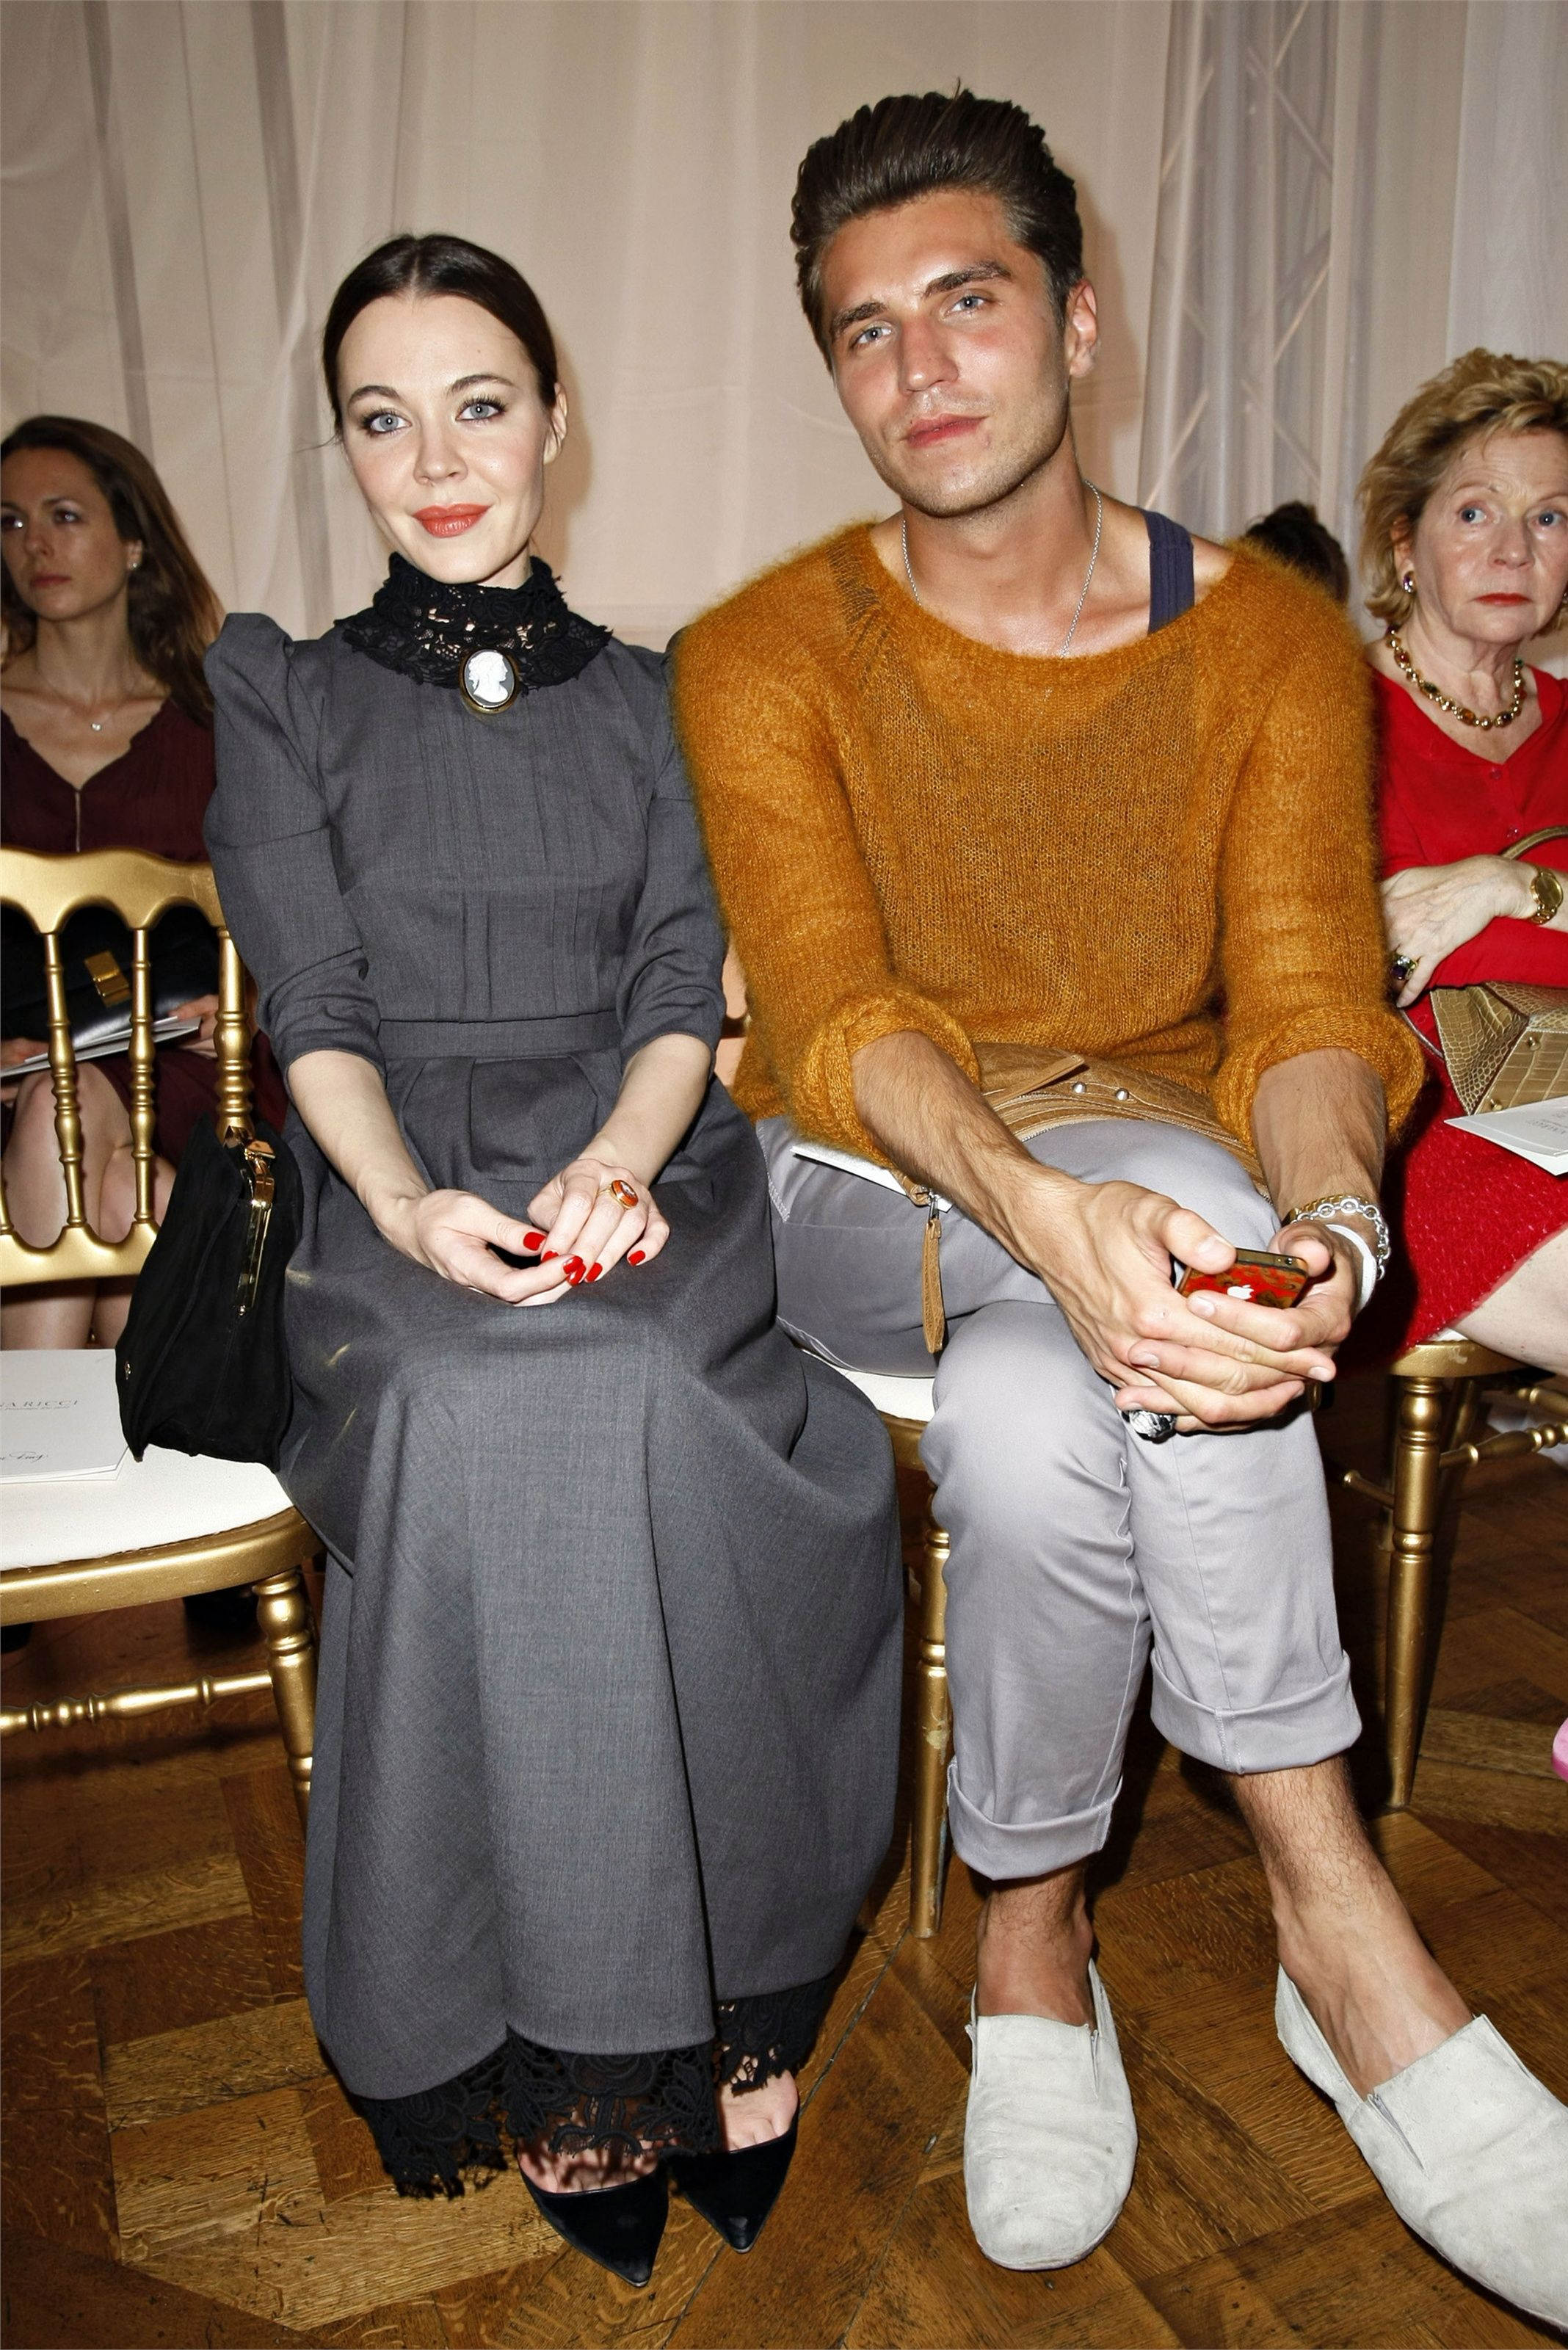 http://images.vogue.it/imgs/sfilate/pe-2012-collezioni/nina-ricci/frontrow/HQ/00070h.jpg